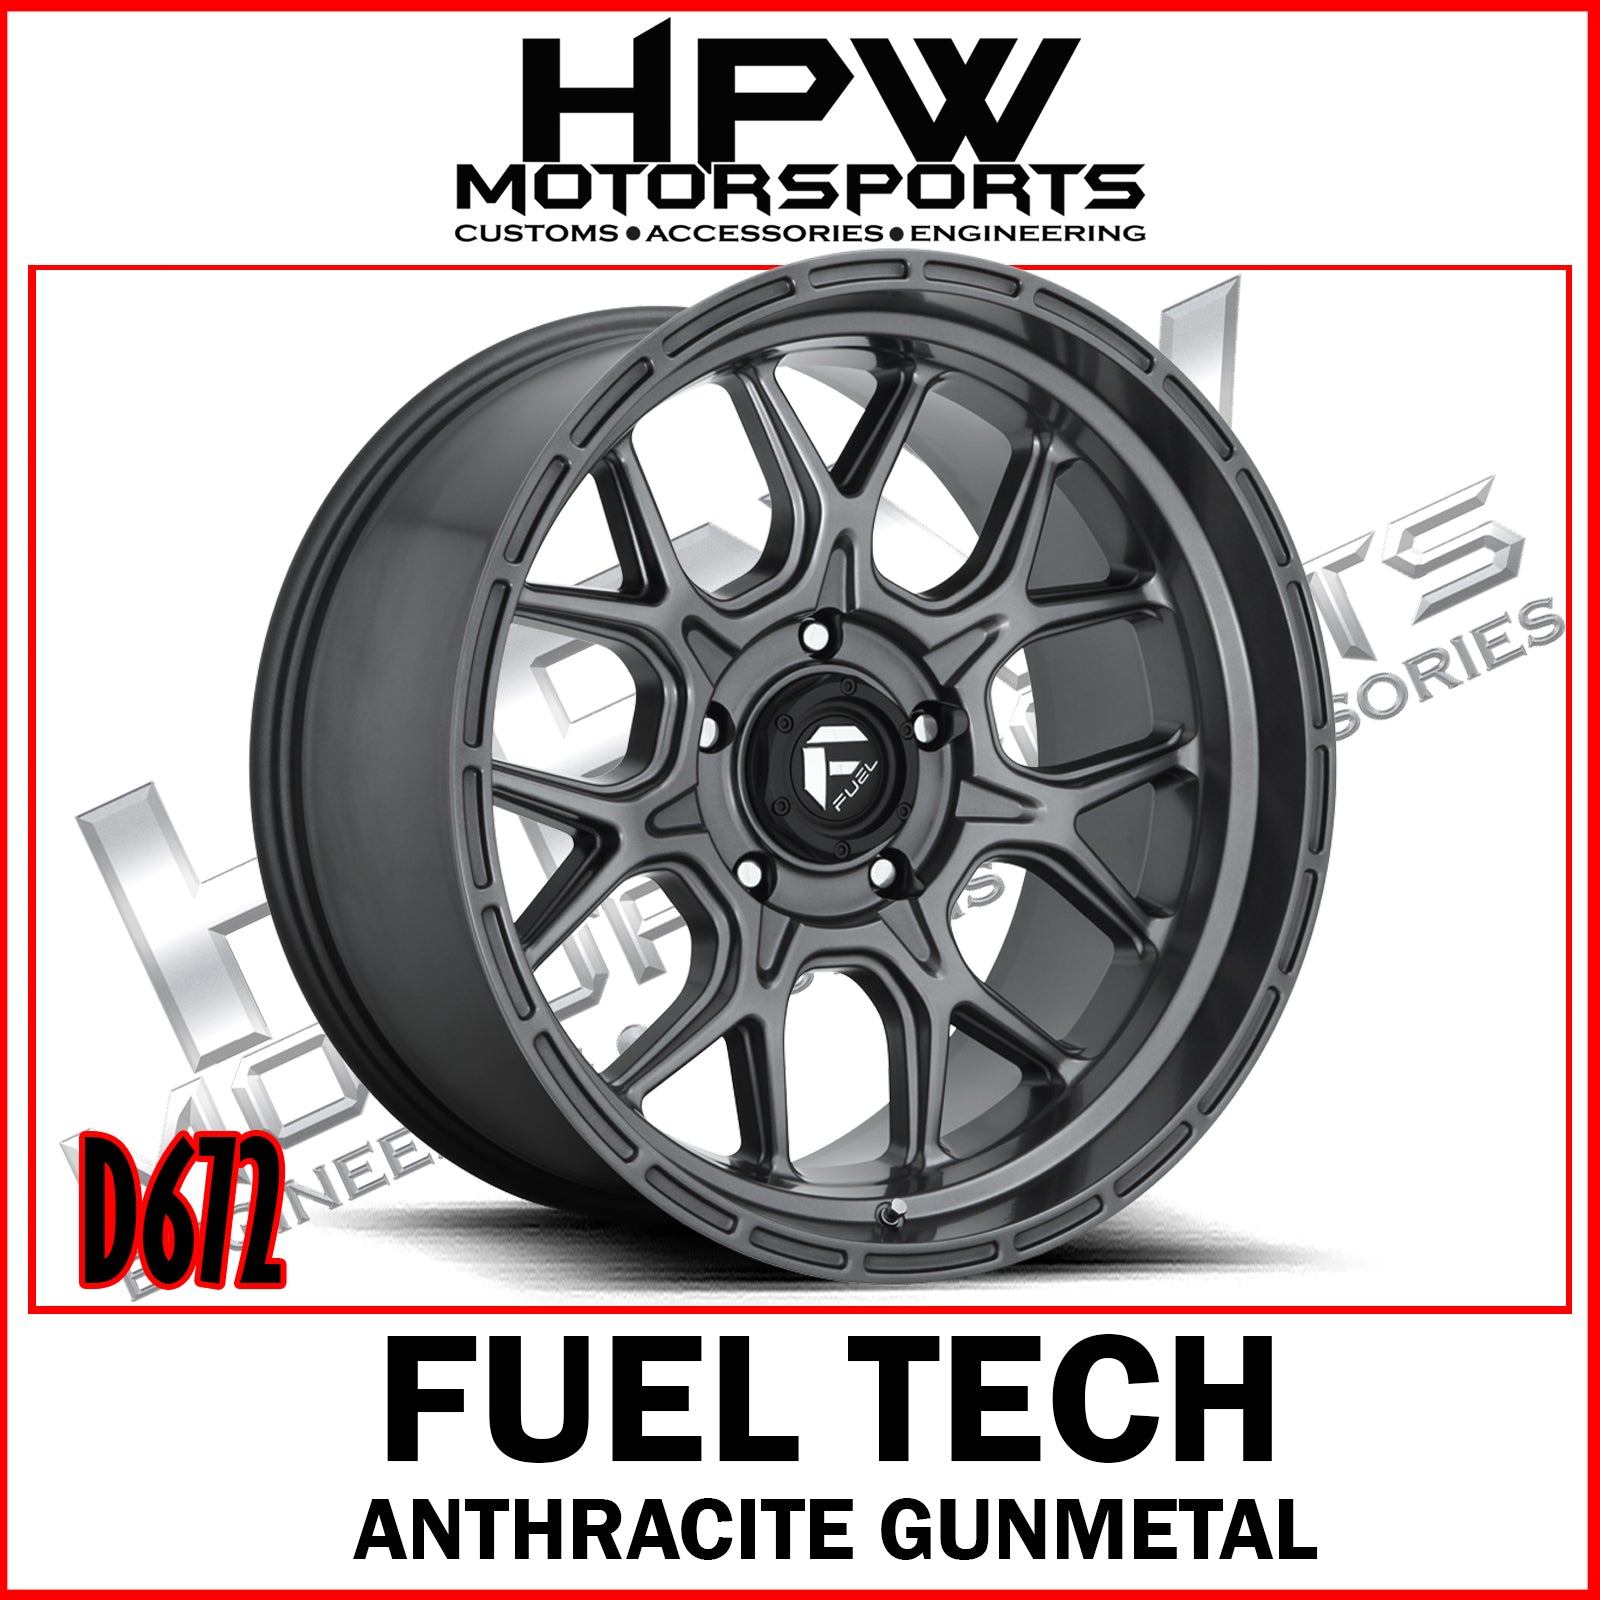 D672 FUEL TECH - GUNMETAL ANTHRACITE - Set of 4